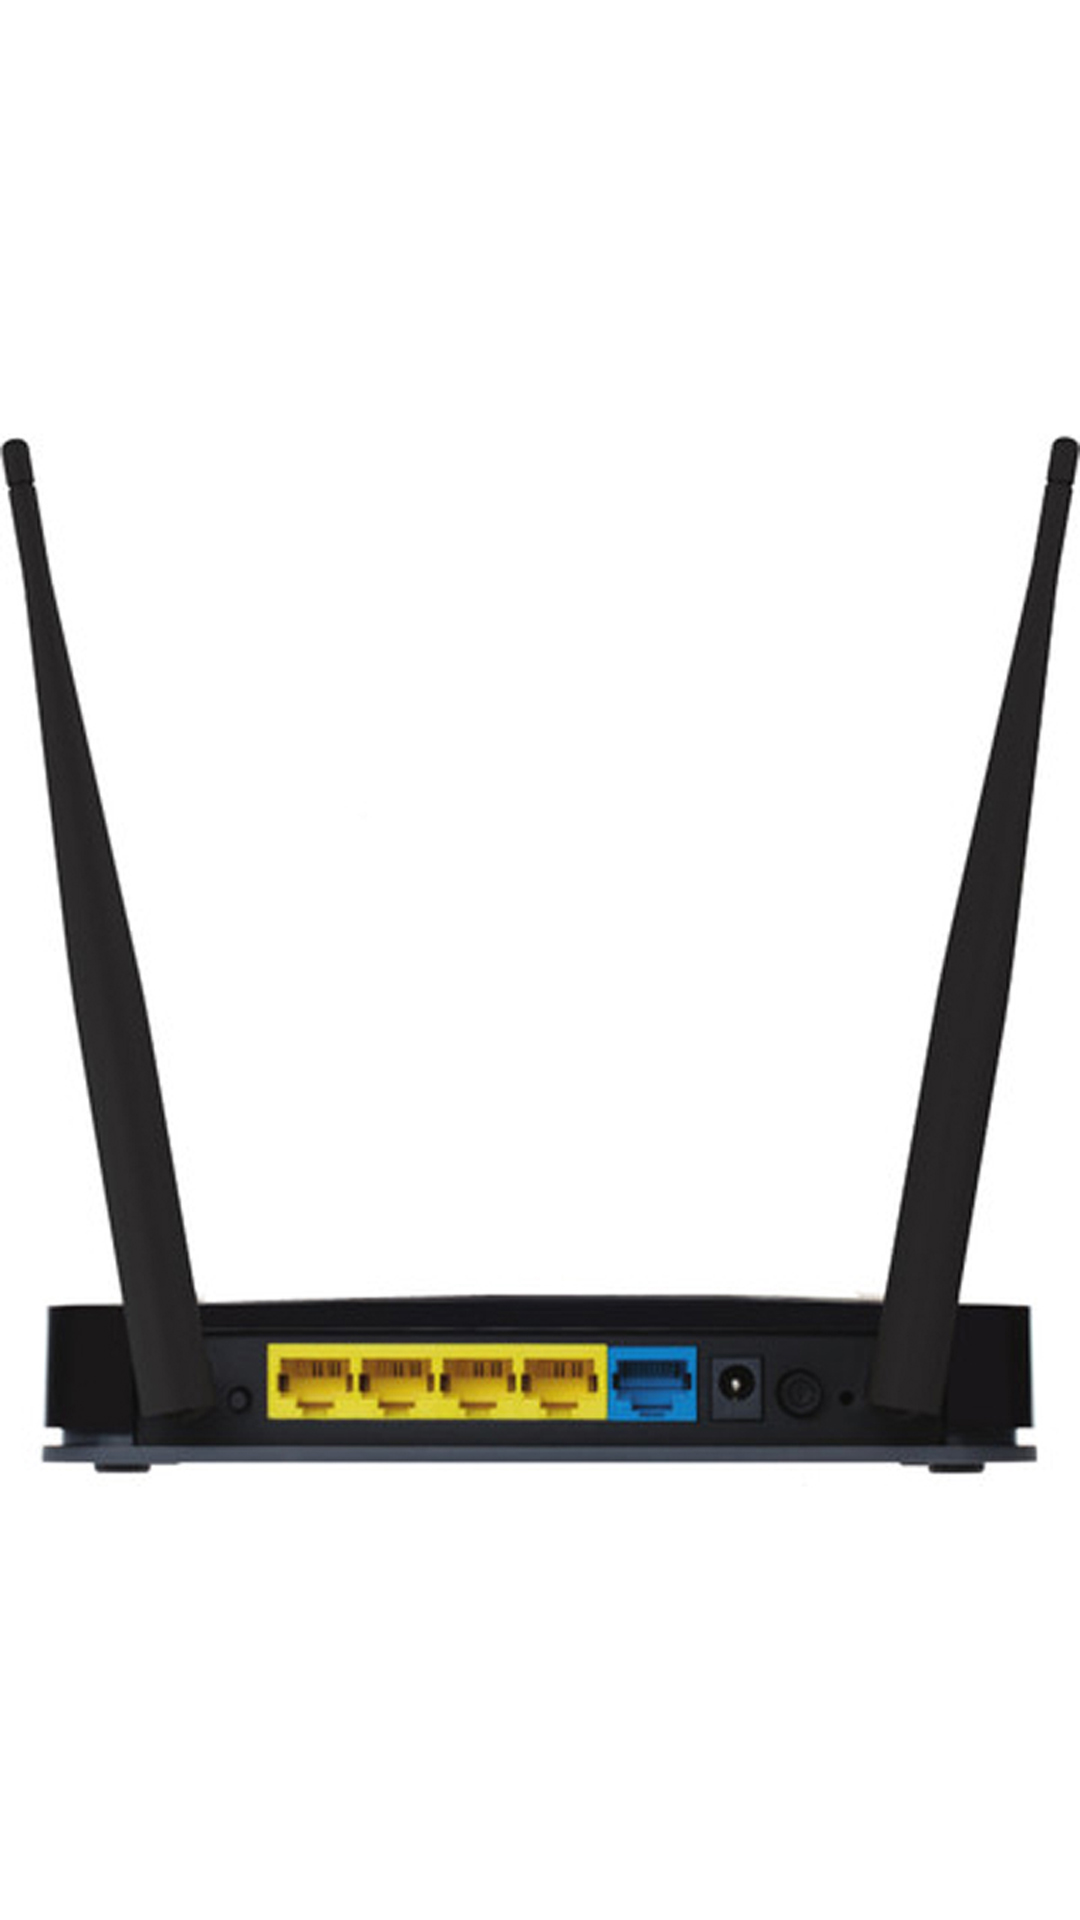 Netgear JWNR2010 300 Mbps Wireless without Modem Router (Black)